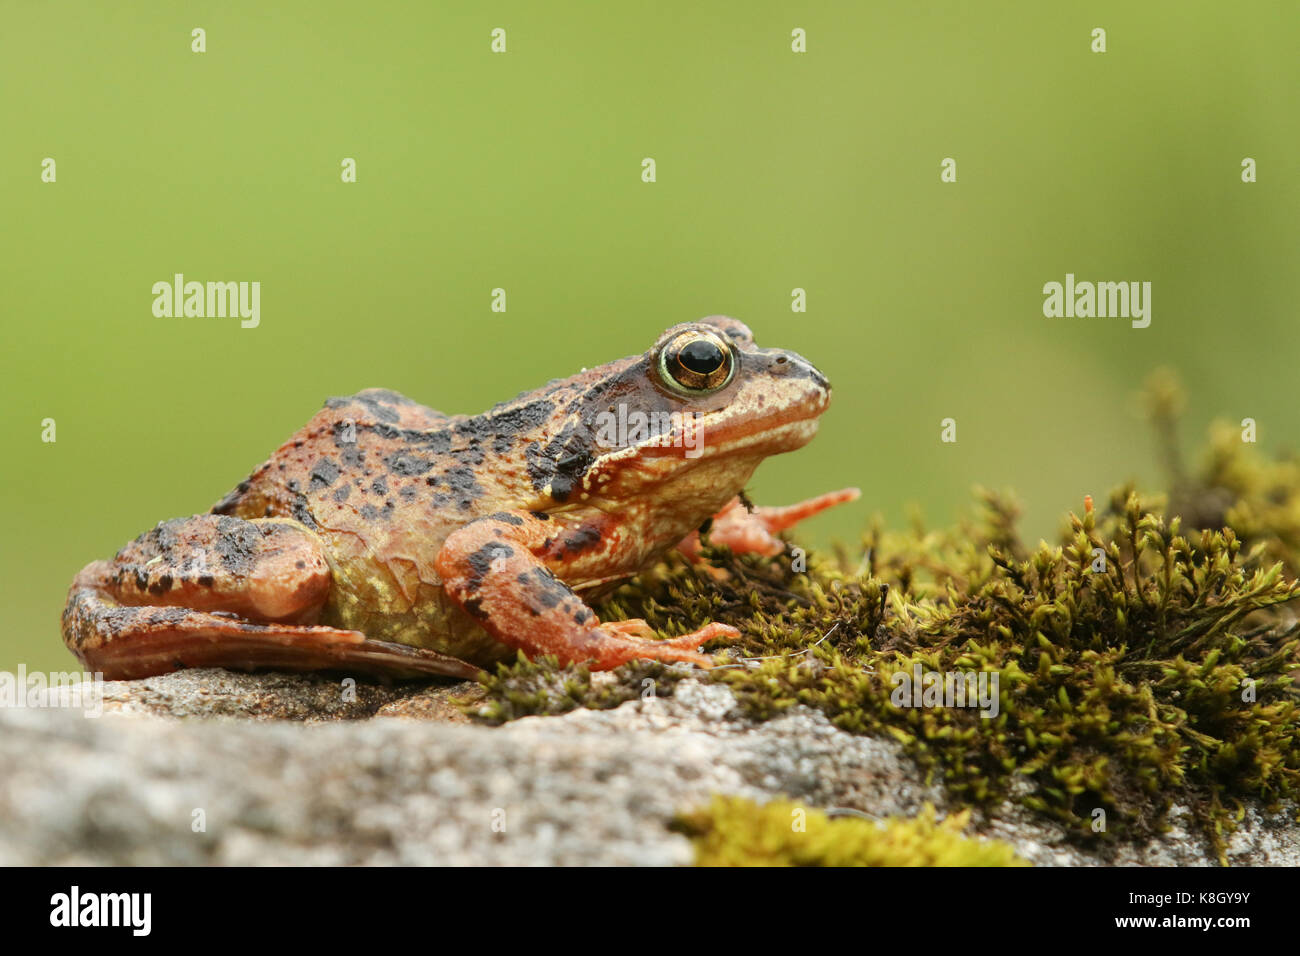 A Common Frog or European Common Frog (Rana temporaria) sitting on a rock covered in moss. Stock Photo